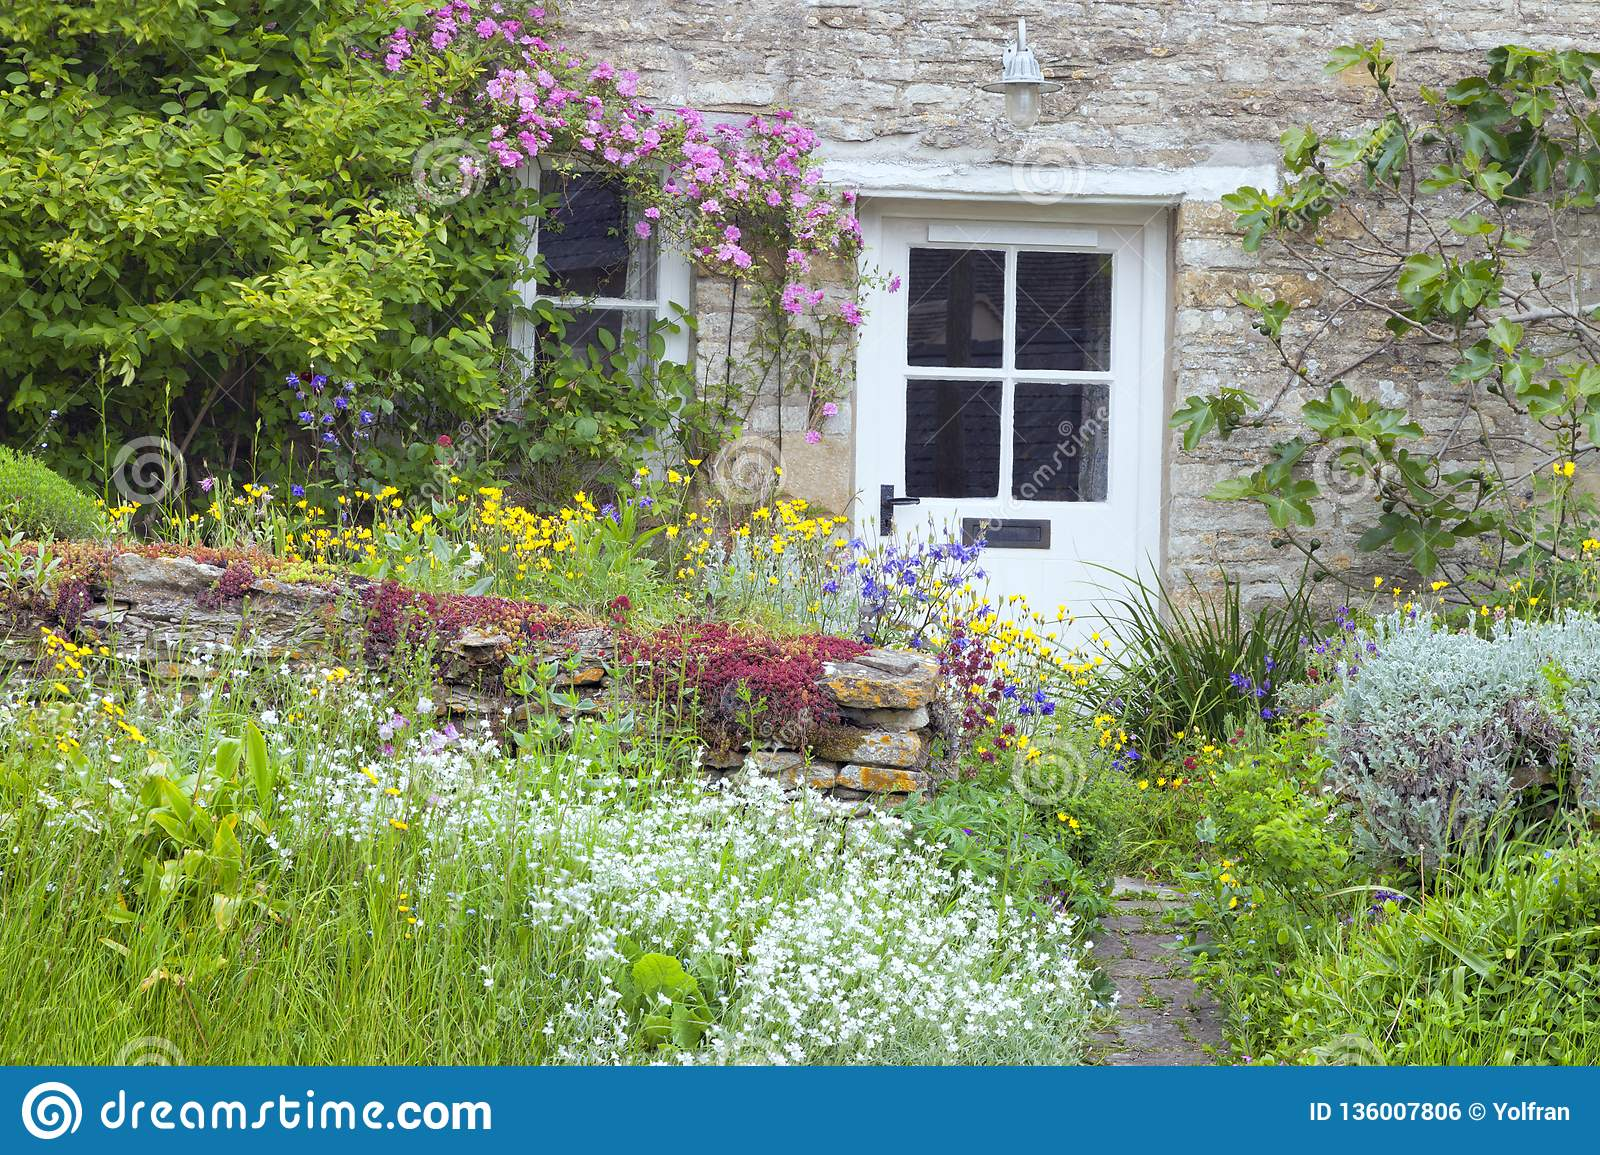 Charming english cottage with white doors flowers in the garden